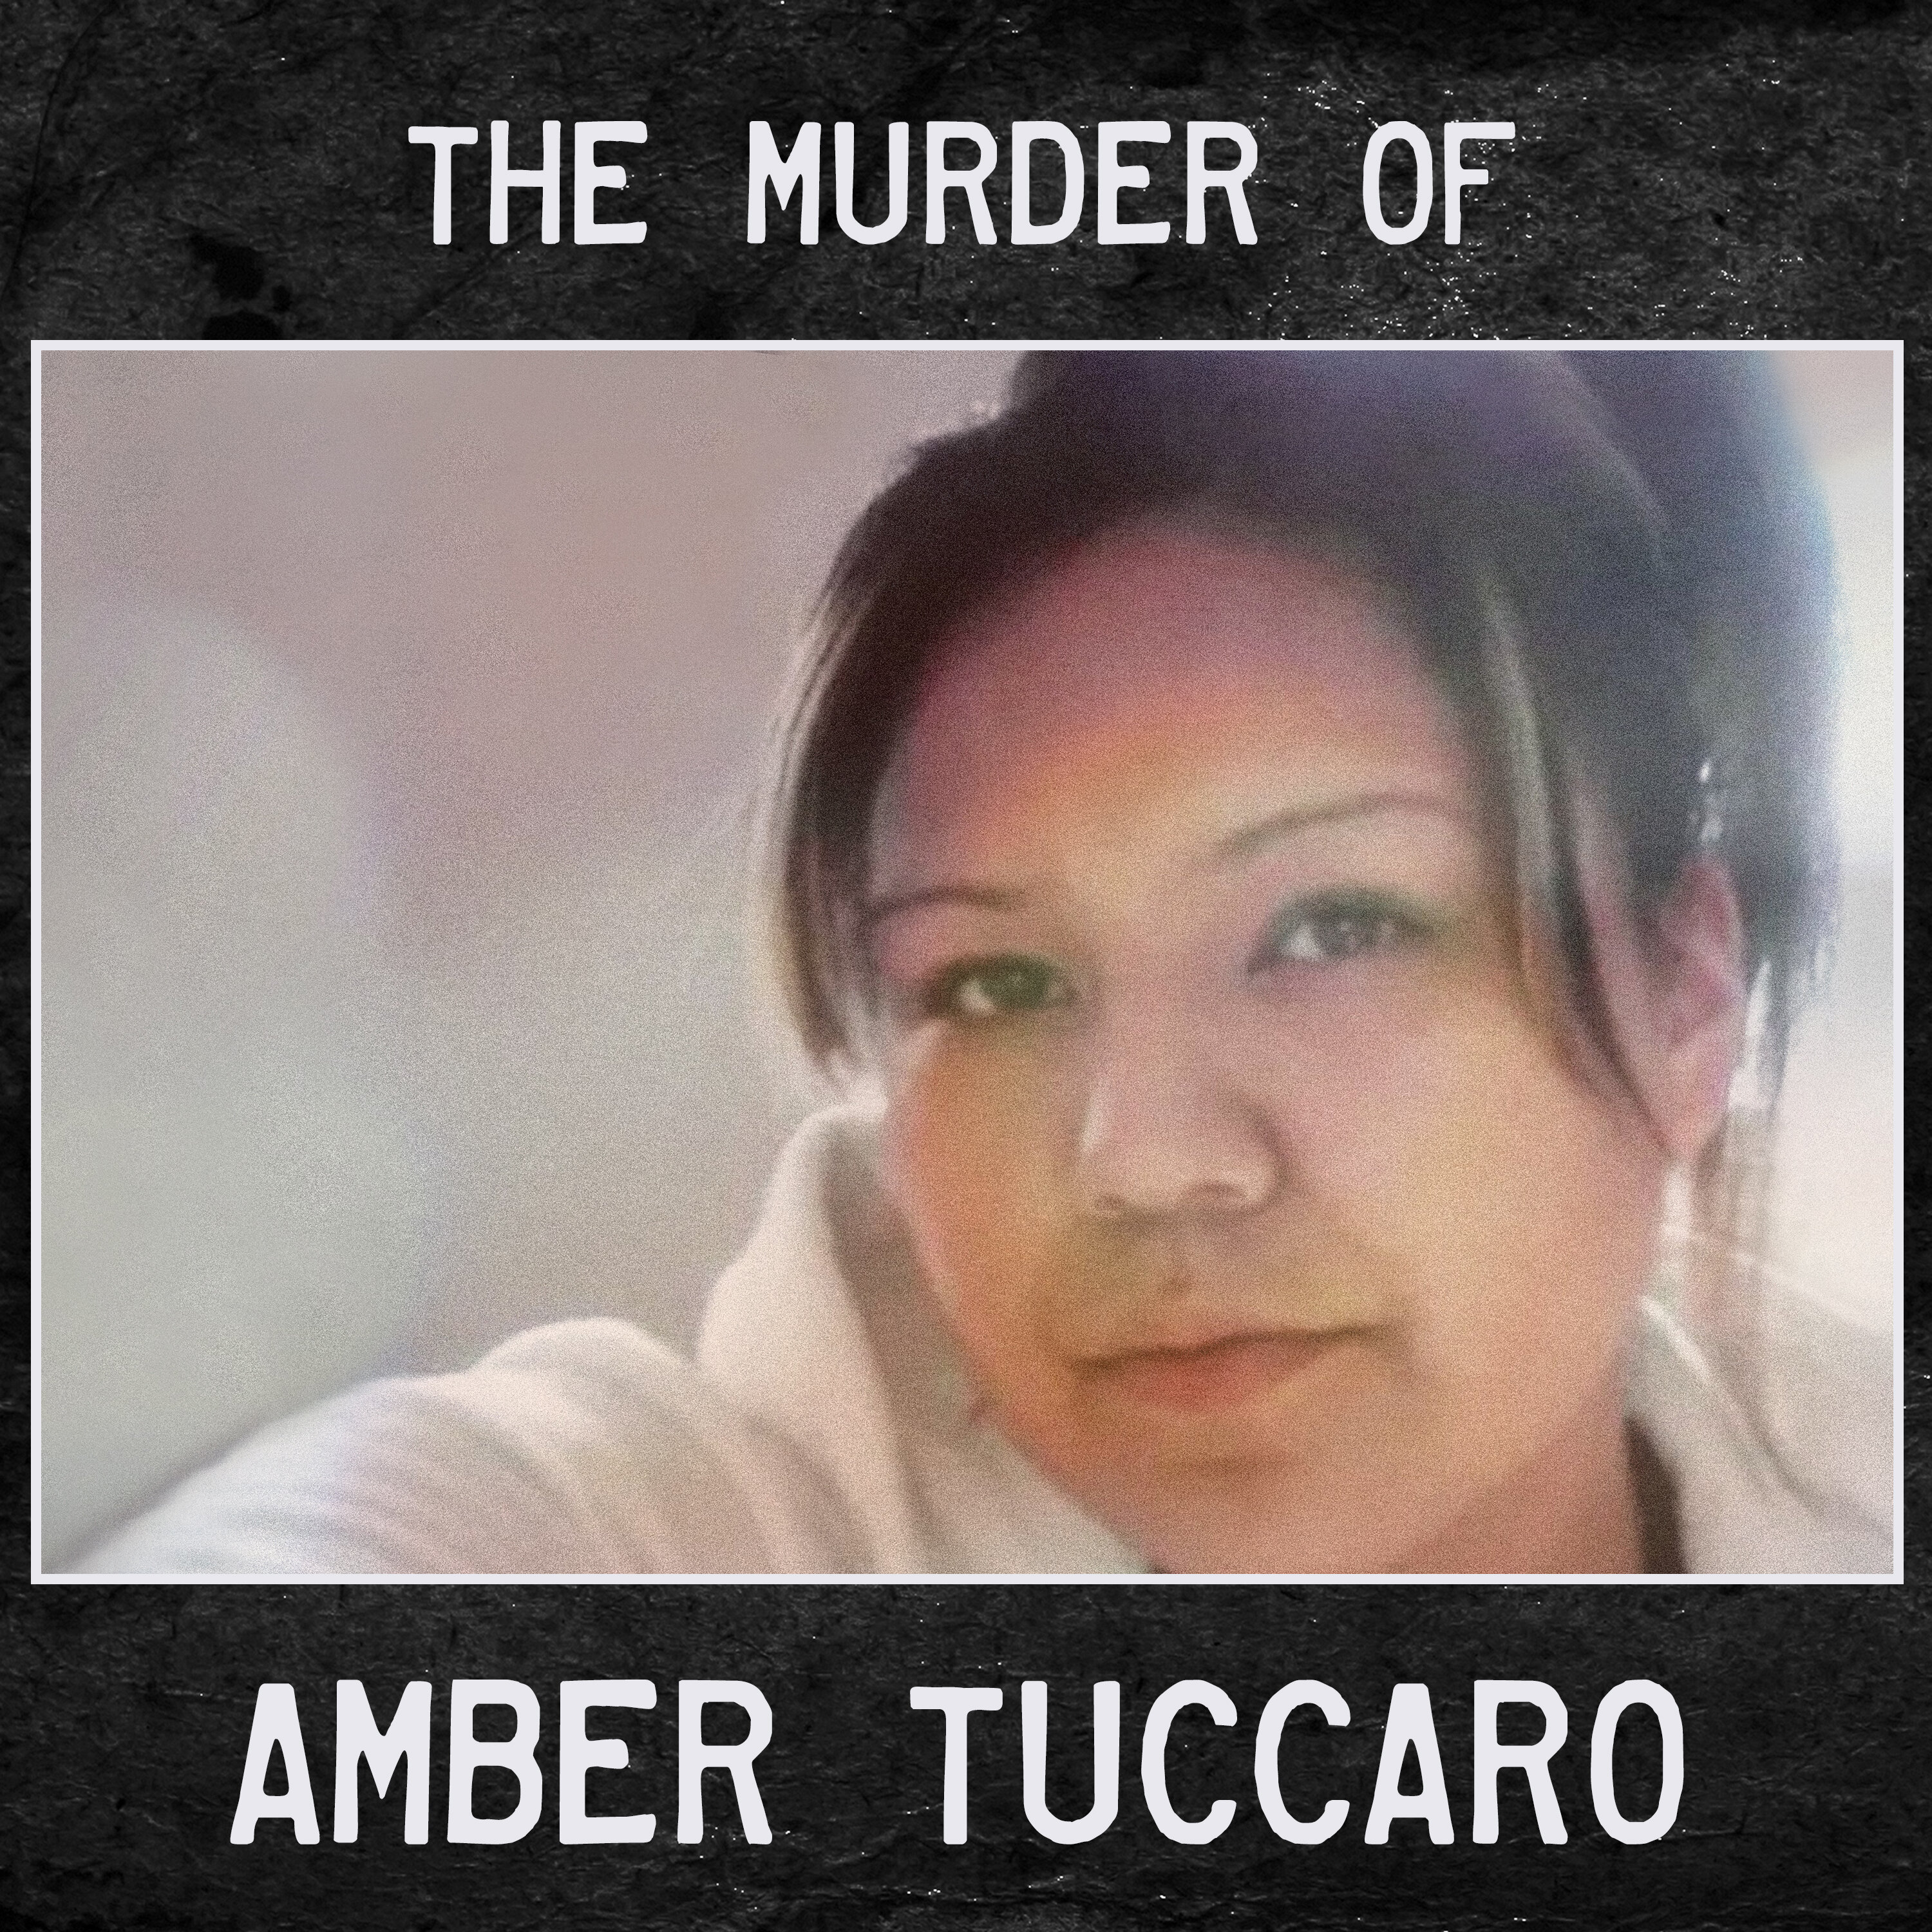 the Murder of Amber Tuccaro